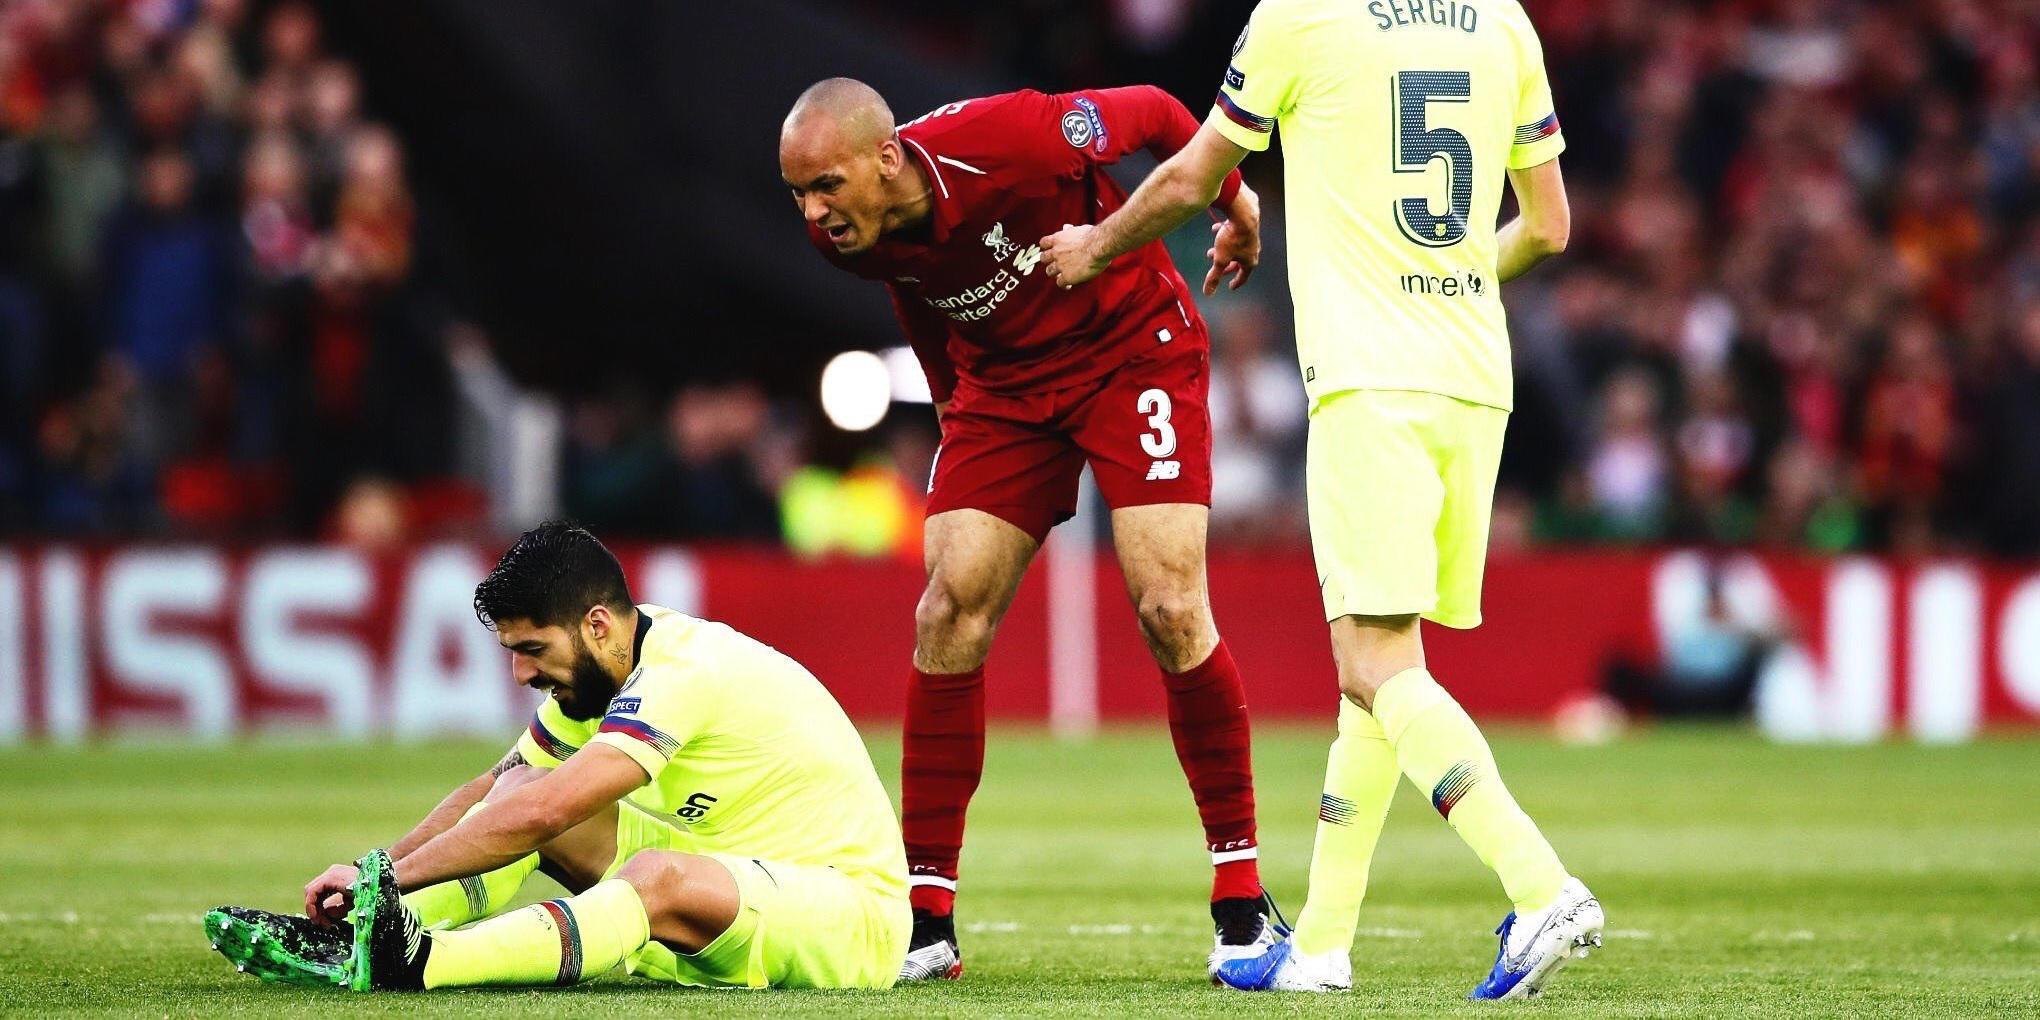 Fabinho references 2018/19 Champions League moment that once infuriated him during Instagram Q&A – 'Just ball ref'